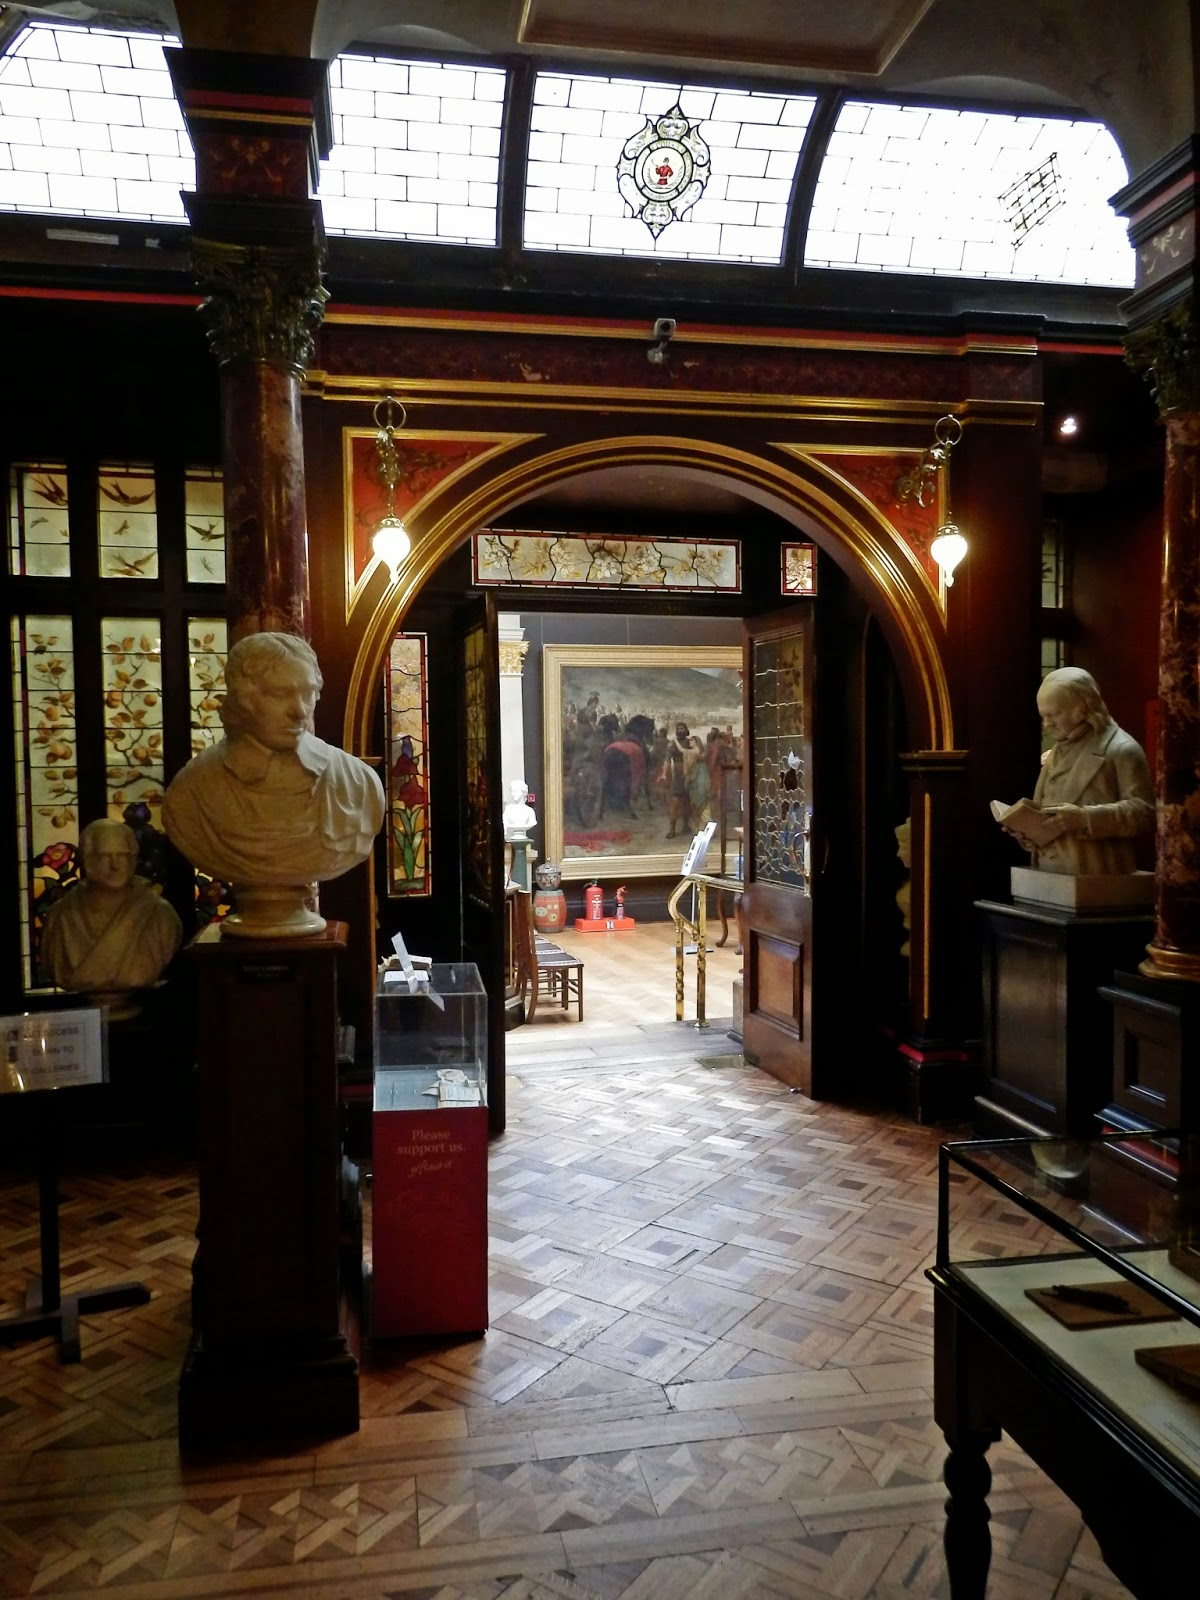 Russell-Cotes art gallery and museum, Bournemouth